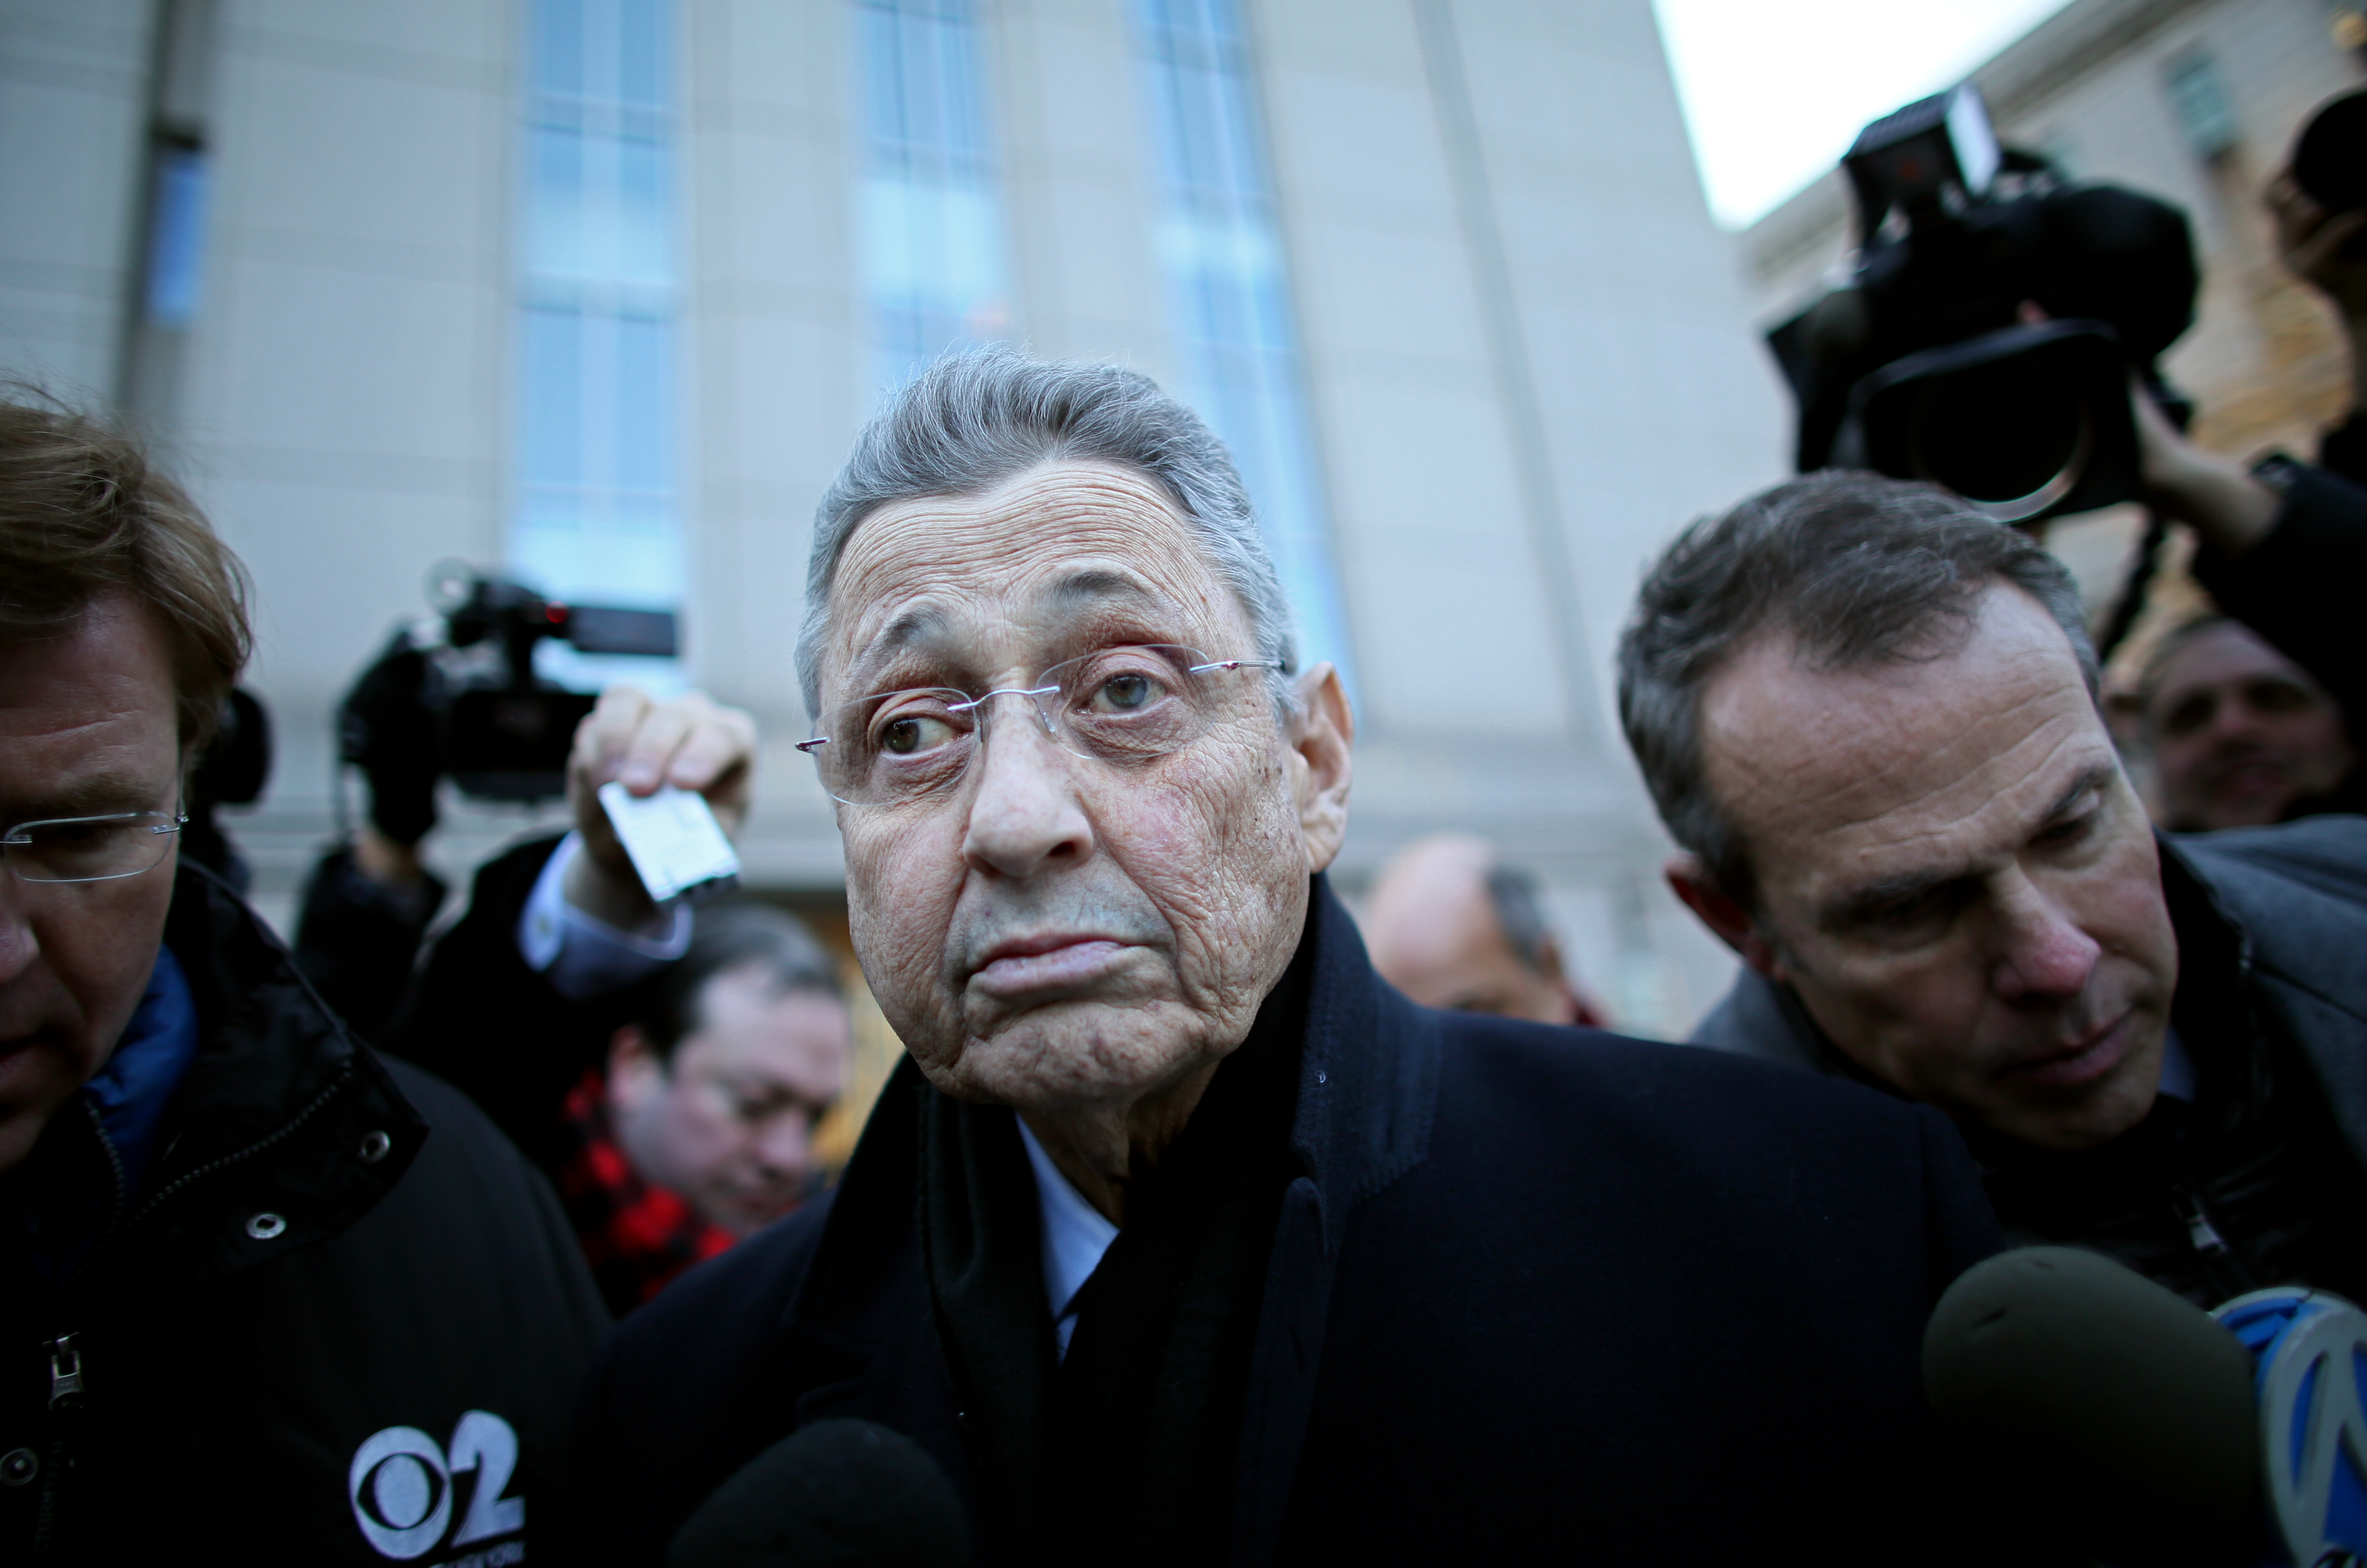 New York State Assembly Speaker Sheldon Silver walks out of the Federal Courthouse after his arraignment on January 22, 2015 in New York City. Silver was arrested on bribery and corruption charges Thursday morning after a long-term investigation by the FBI. (Photo by Yana Paskova/Getty Images)